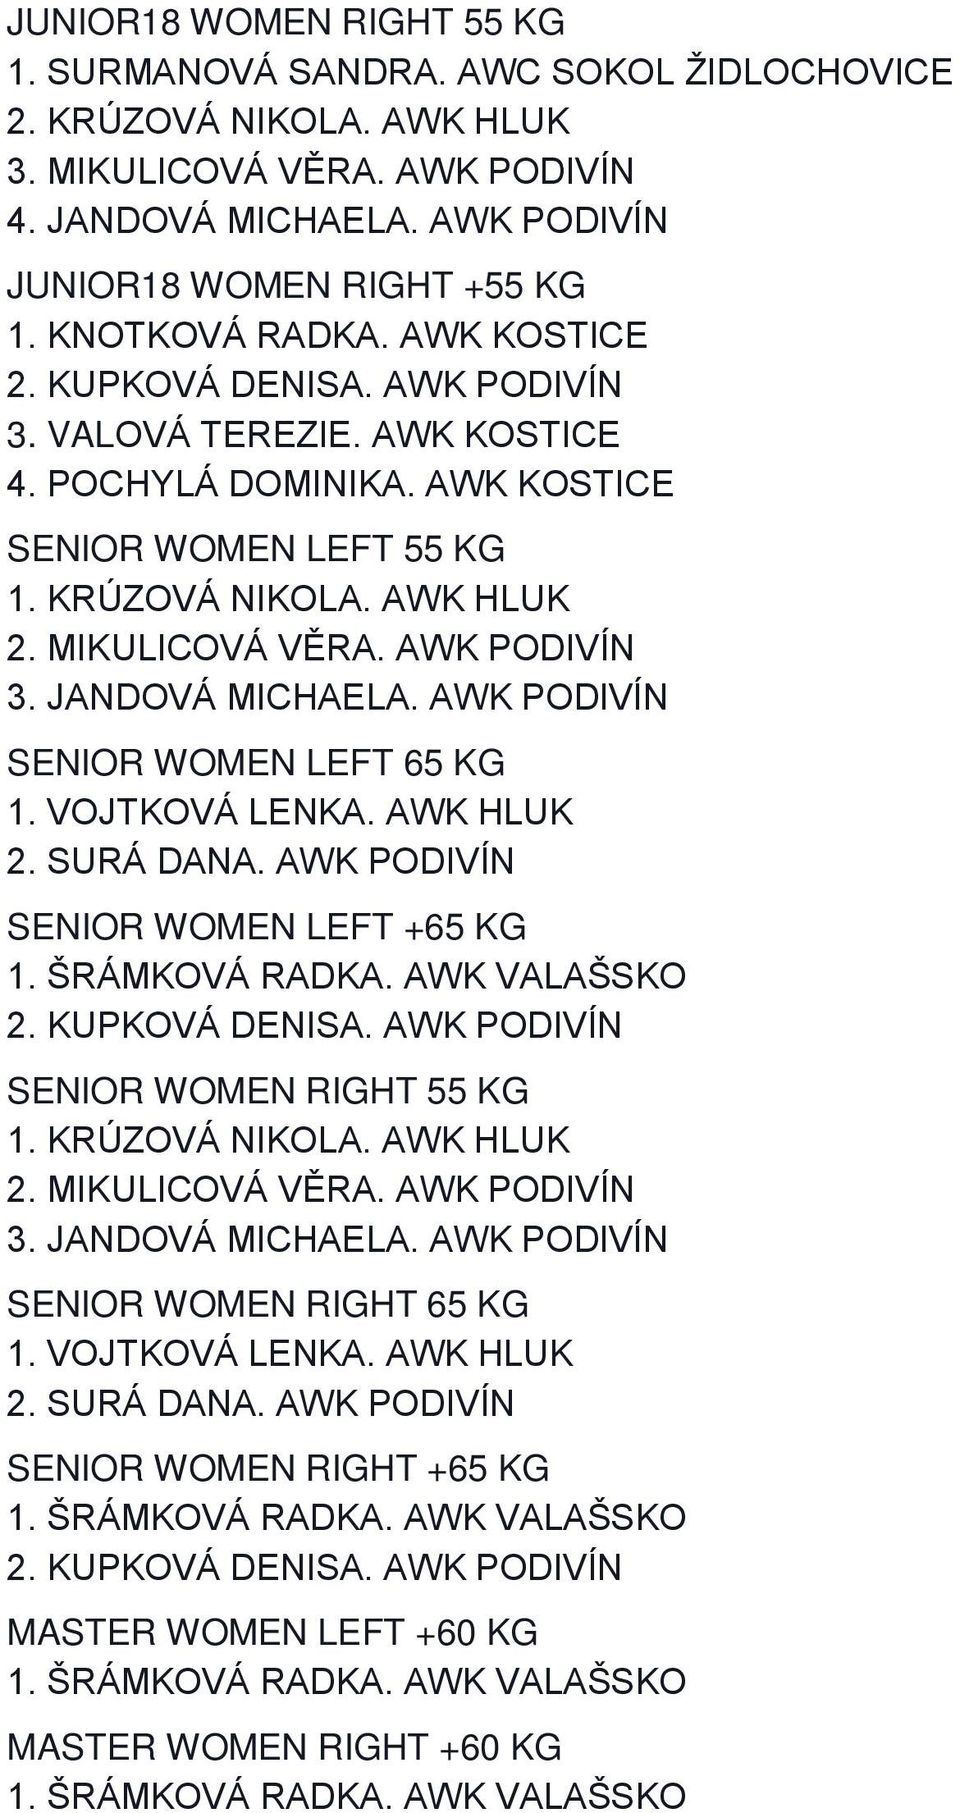 JANDOVÁ MICHAELA. AWK PODIVÍN SENIOR WOMEN LEFT 65 KG 1. VOJTKOVÁ LENKA. AWK HLUK 2. SURÁ DANA. AWK PODIVÍN SENIOR WOMEN LEFT +65 KG SENIOR WOMEN RIGHT 55 KG 2.